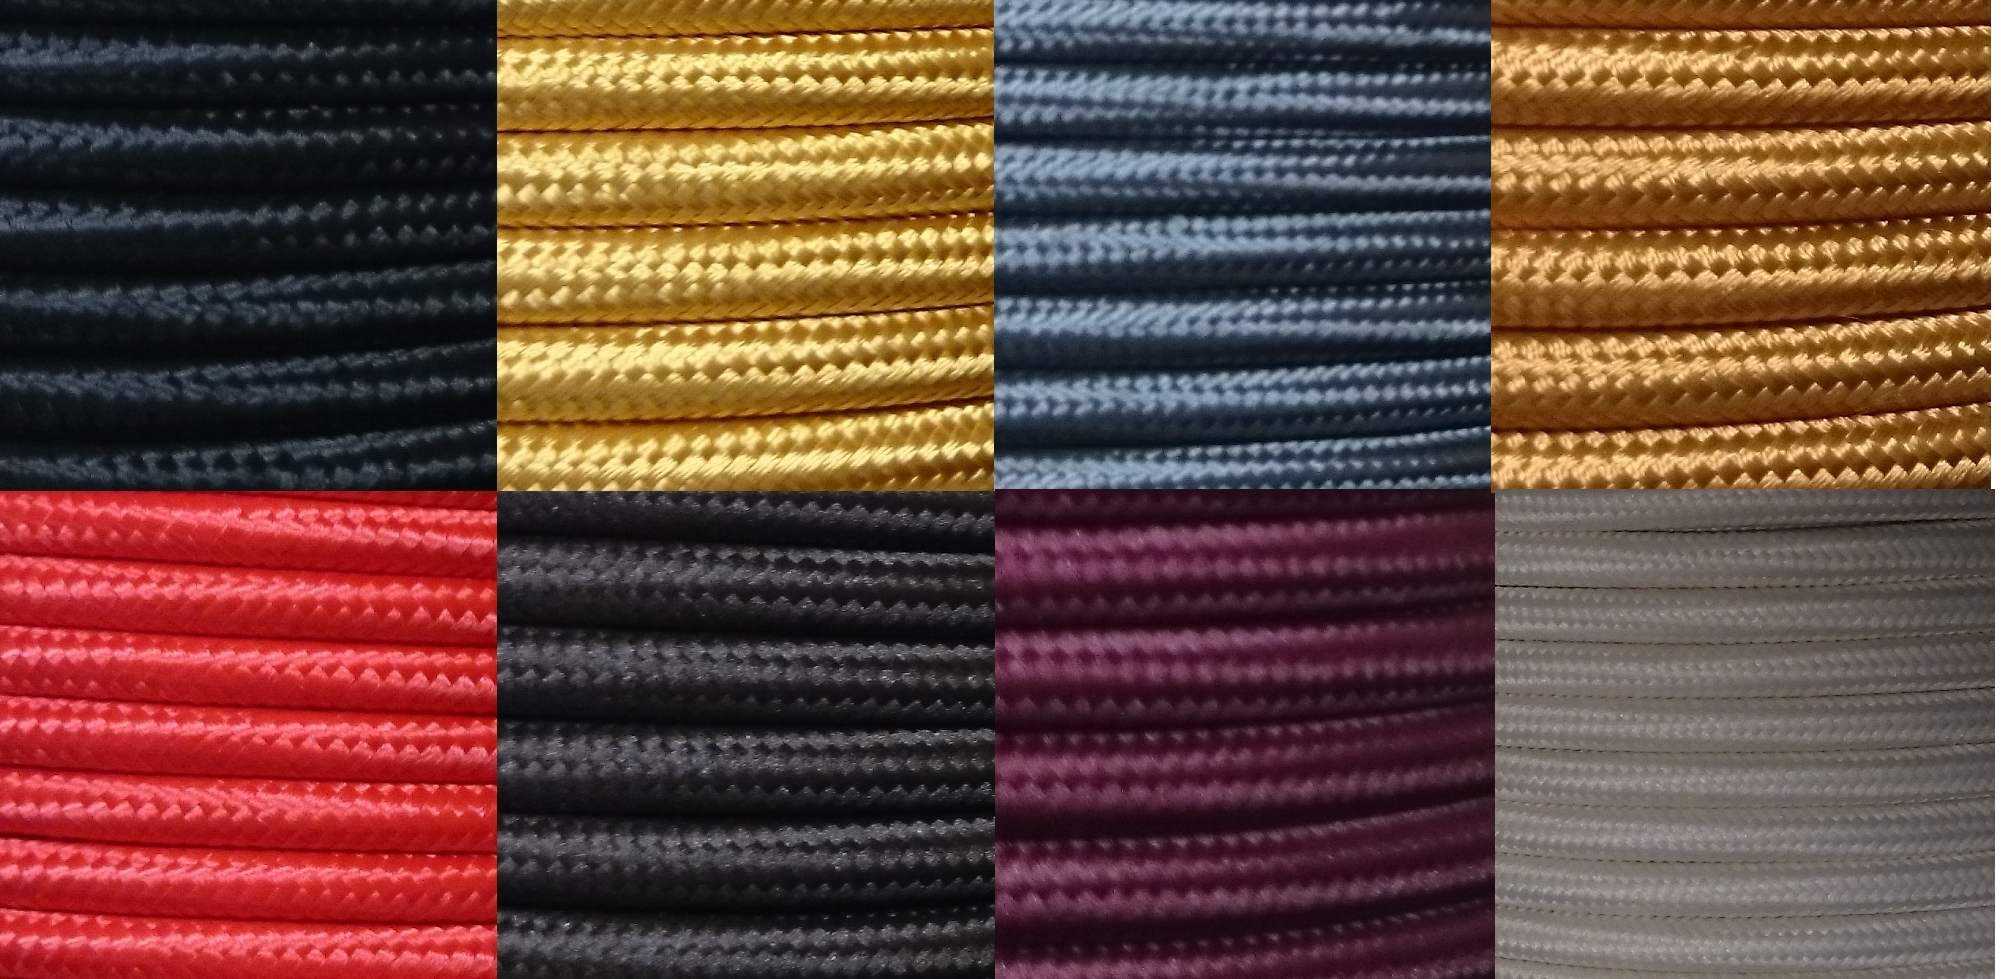 3 Core 0 75mm Round Braided Fabric Electrical Lighting